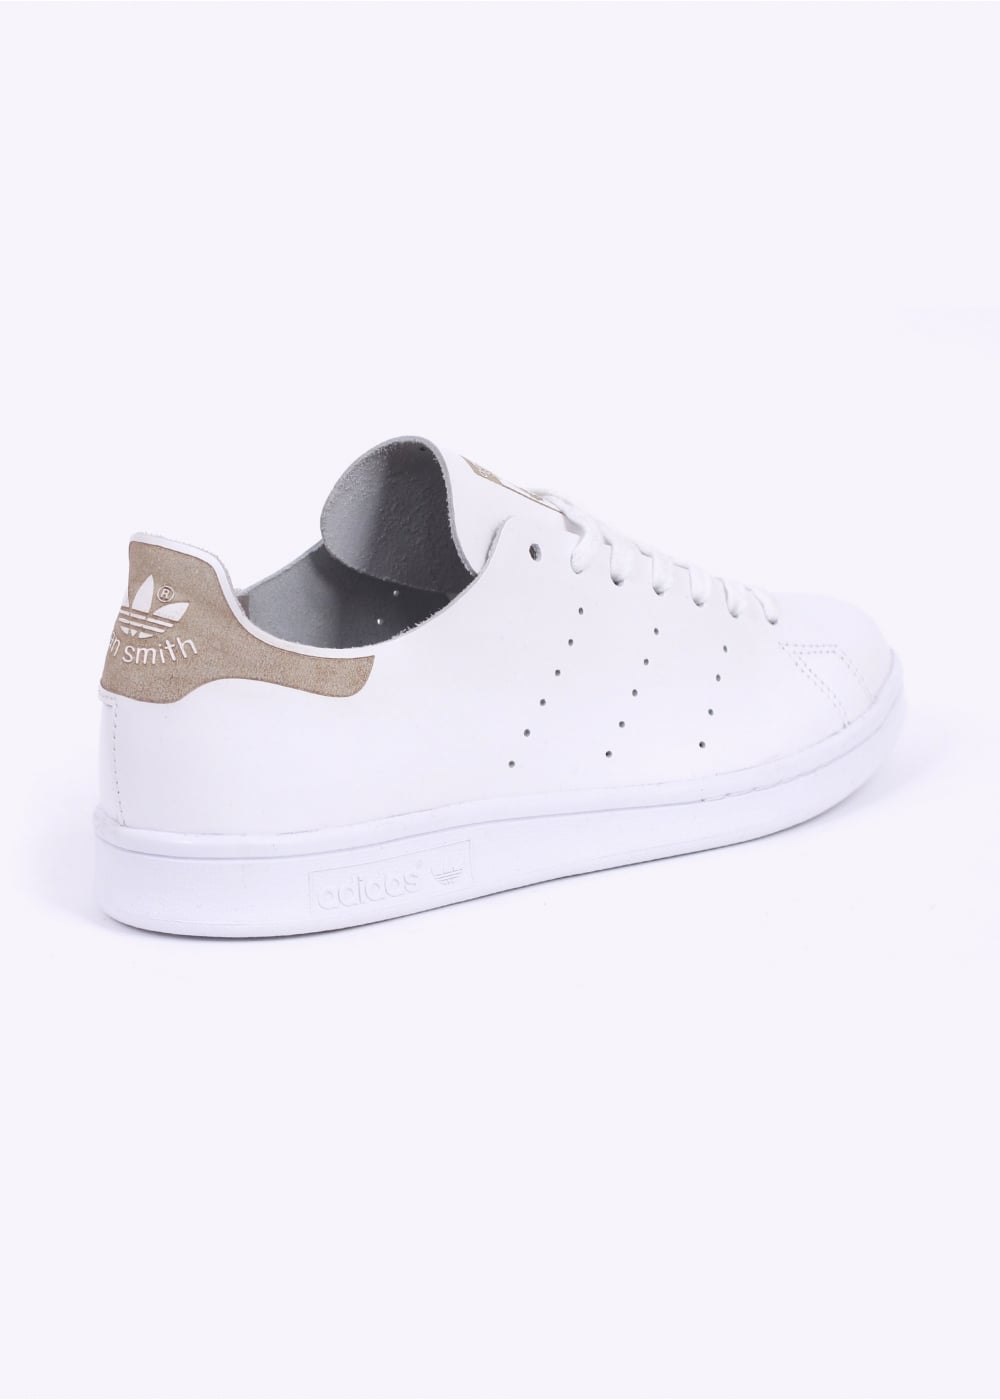 sports shoes 8862f 1c30c adidas Originals Footwear Stan Smith Deconstructed Trainers - White / Light  Brown